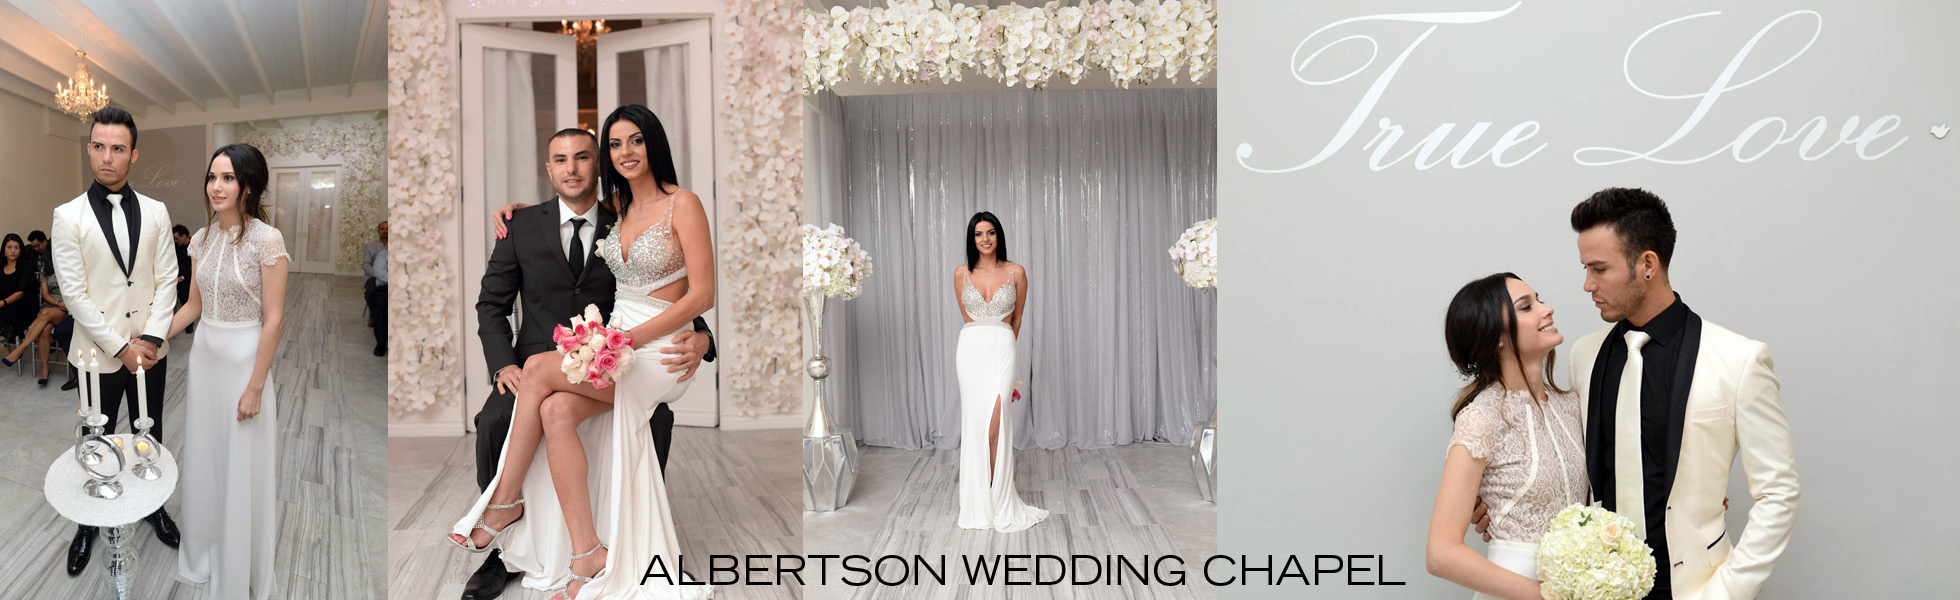 contact us at Albertson wedding chapel